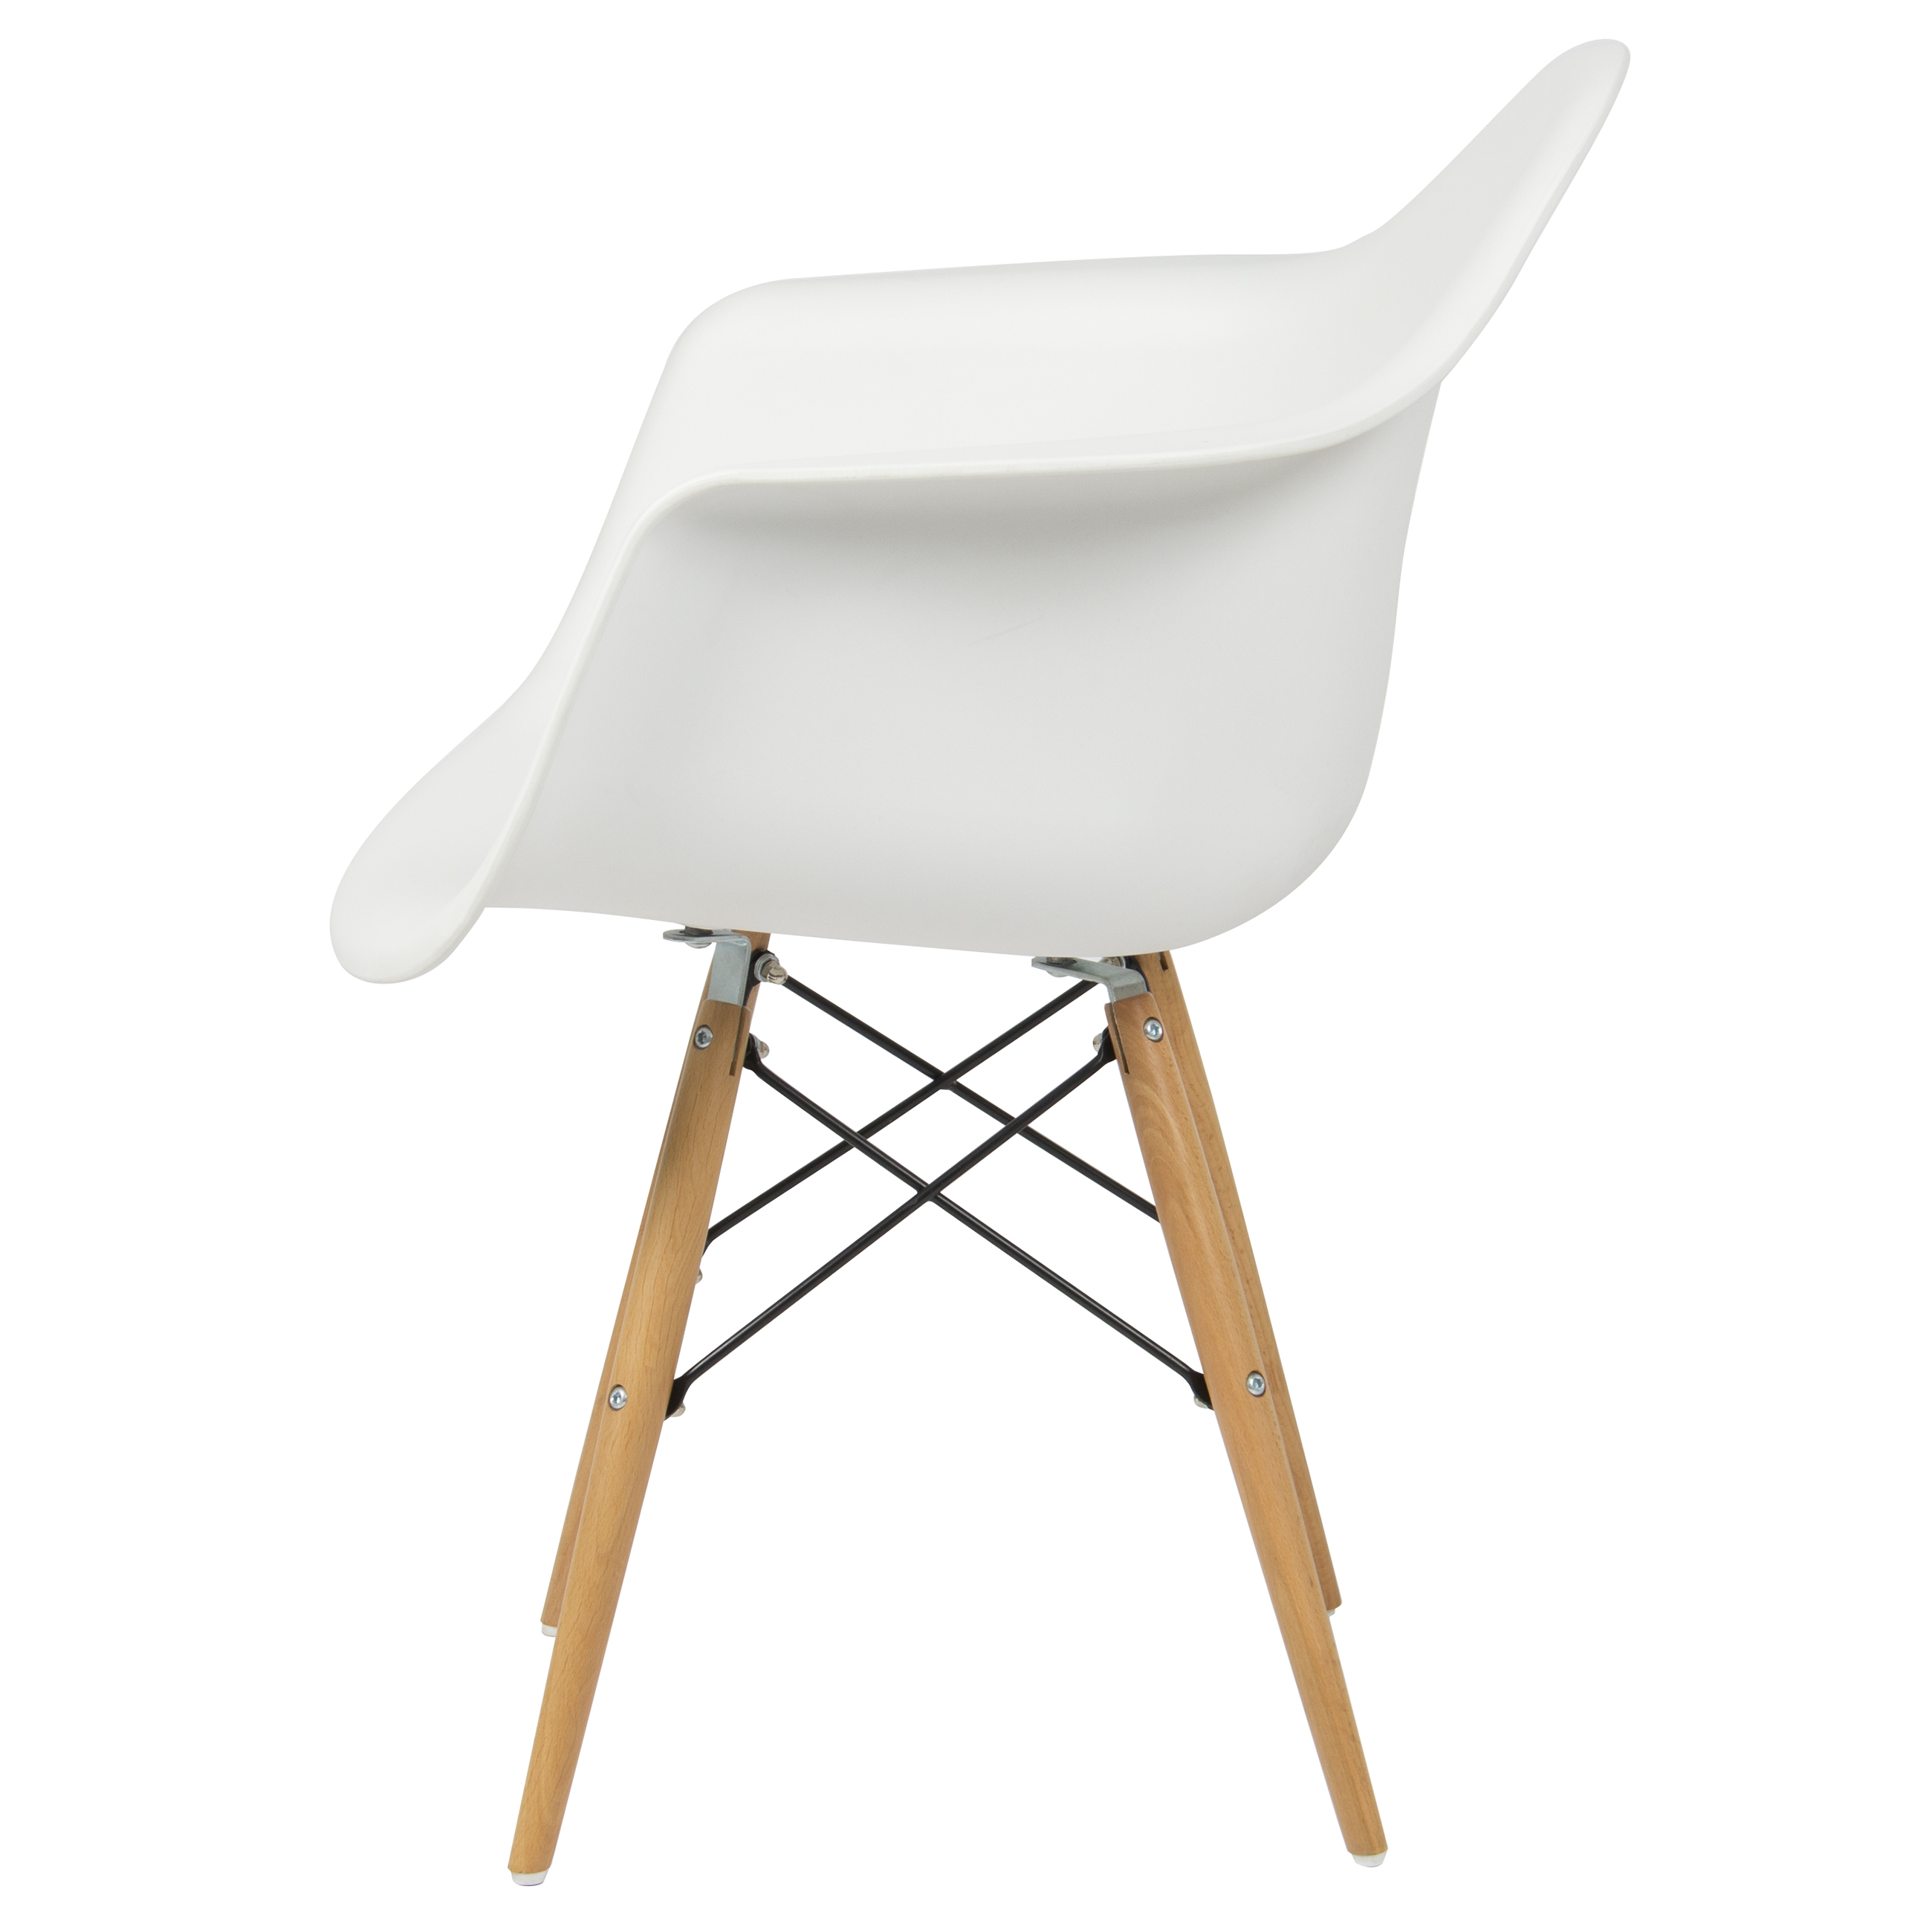 Best Choice Products Eames Style Modern Mid Century Armchair W/ Molded  Plastic Shell   White